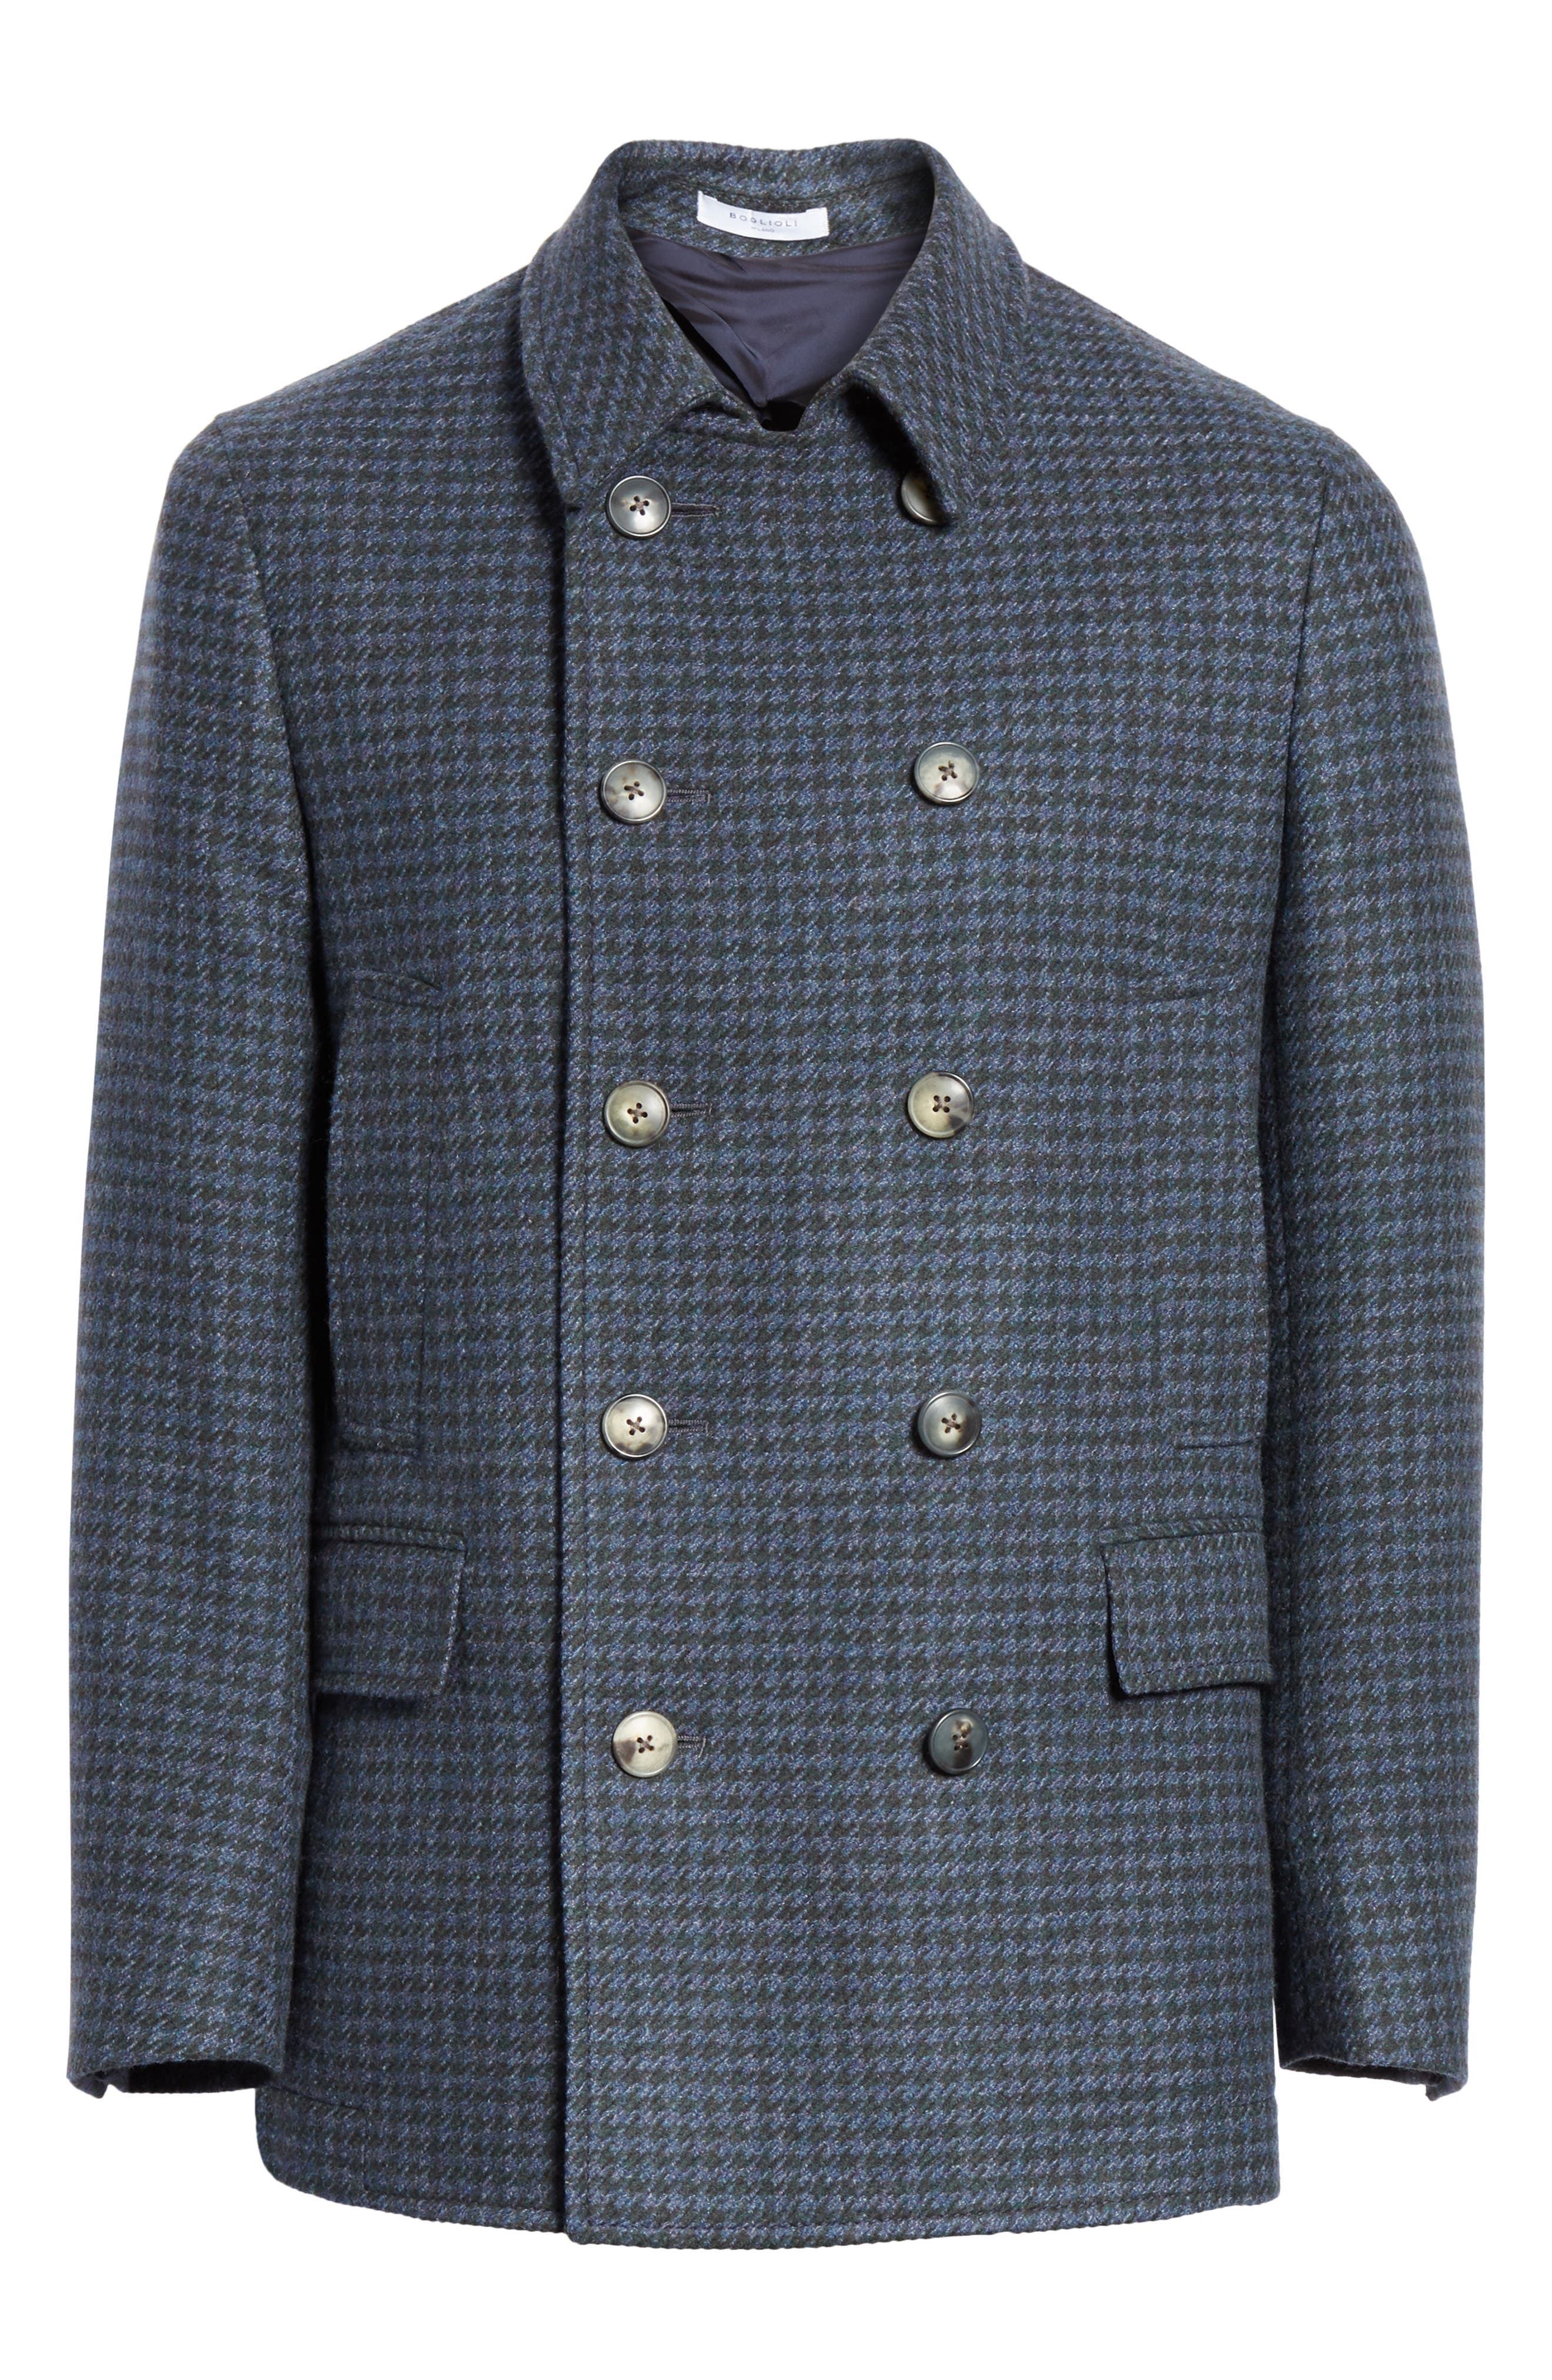 Trim Fit Double Breasted Houndstooth Wool Coat,                             Alternate thumbnail 5, color,                             GREEN/ BLUE